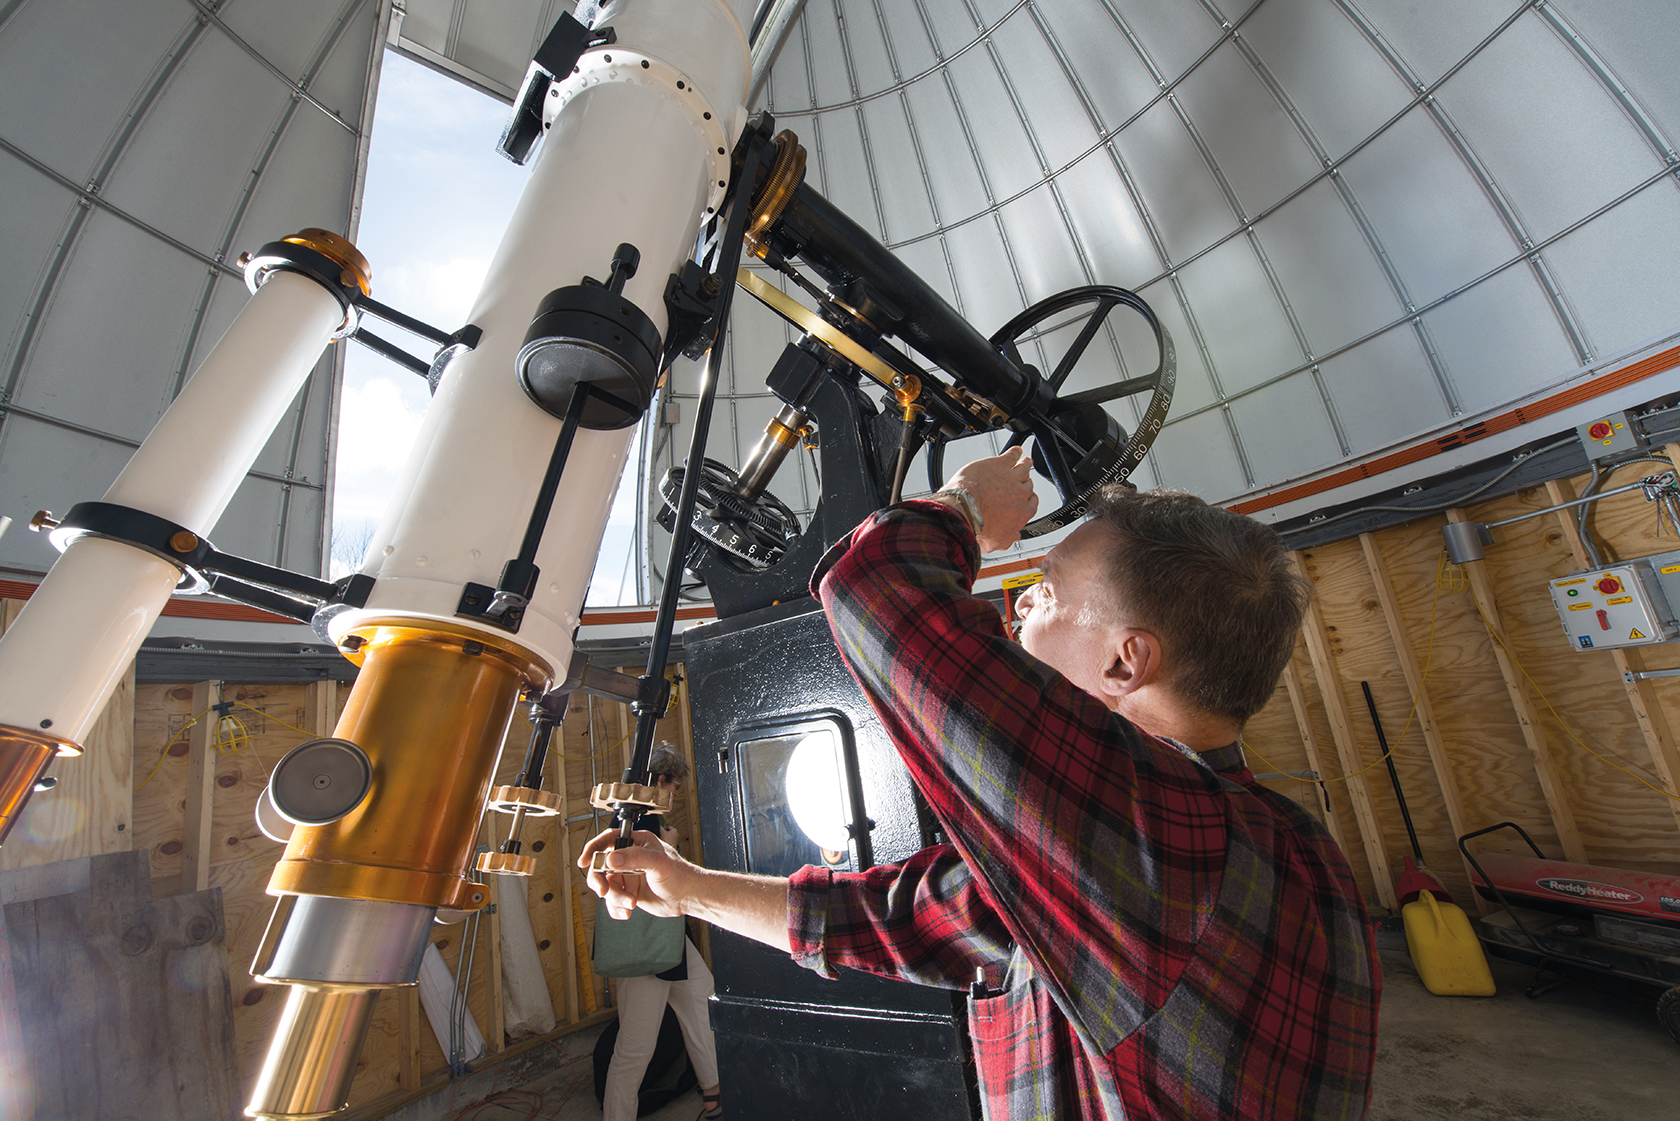 Celestial bodies now shine brighter through the restored Fecker telescope at OHIO's new observatory in Athens. The scope is used by both the OHIO and Athens communities. Photo by Ben Wirtz Siegel, BSVC '02.